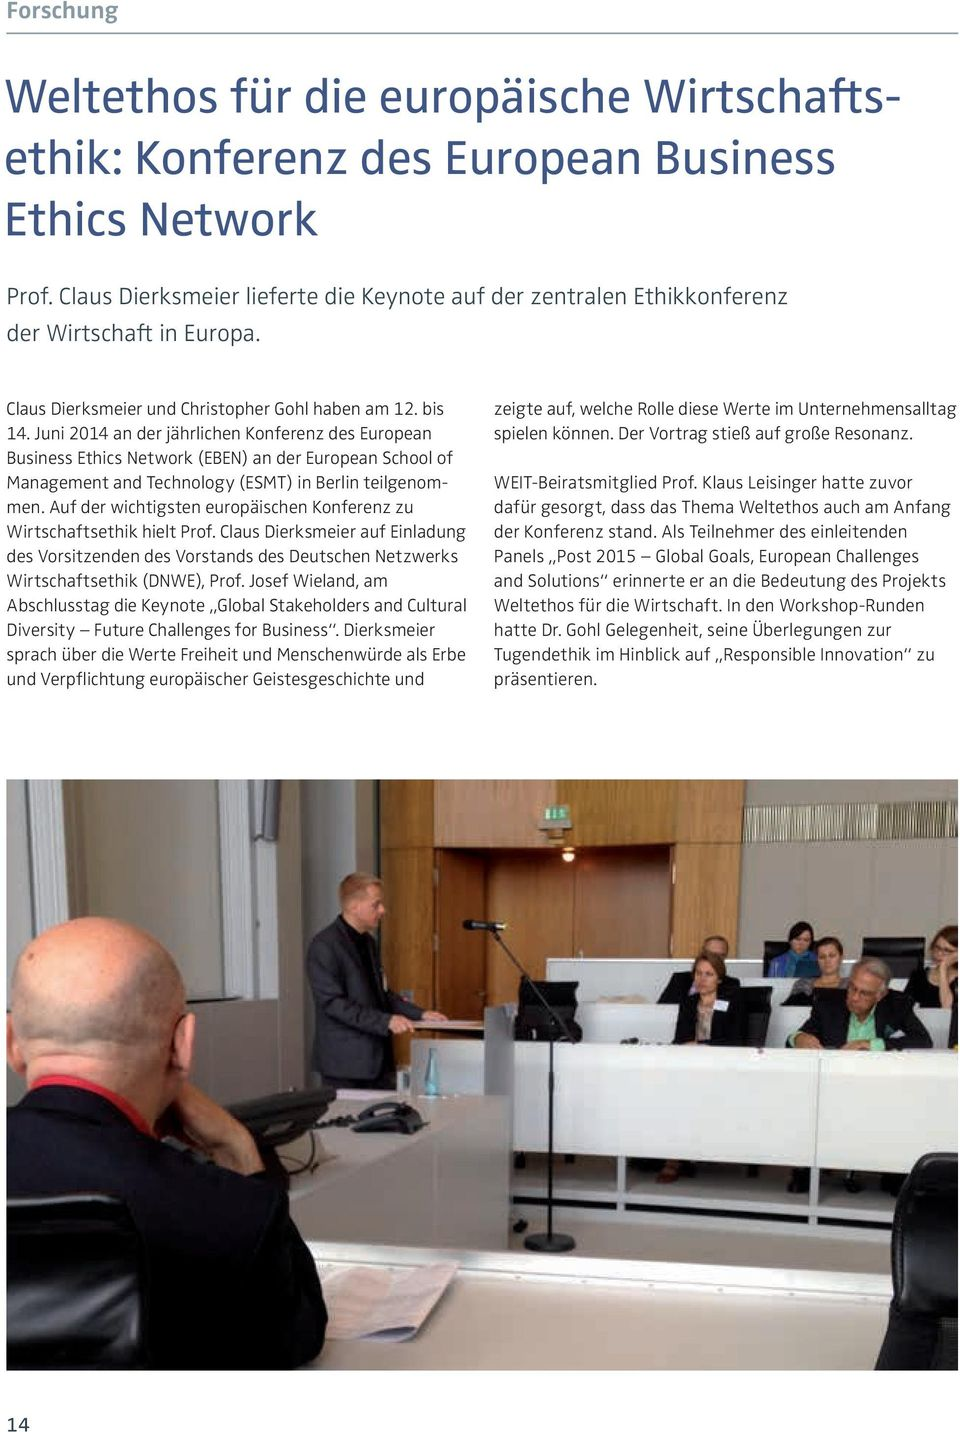 Juni 2014 an der jährlichen Konferenz des European Business Ethics Network (EBEN) an der European School of Management and Technology (ESMT) in Berlin teilgenommen.